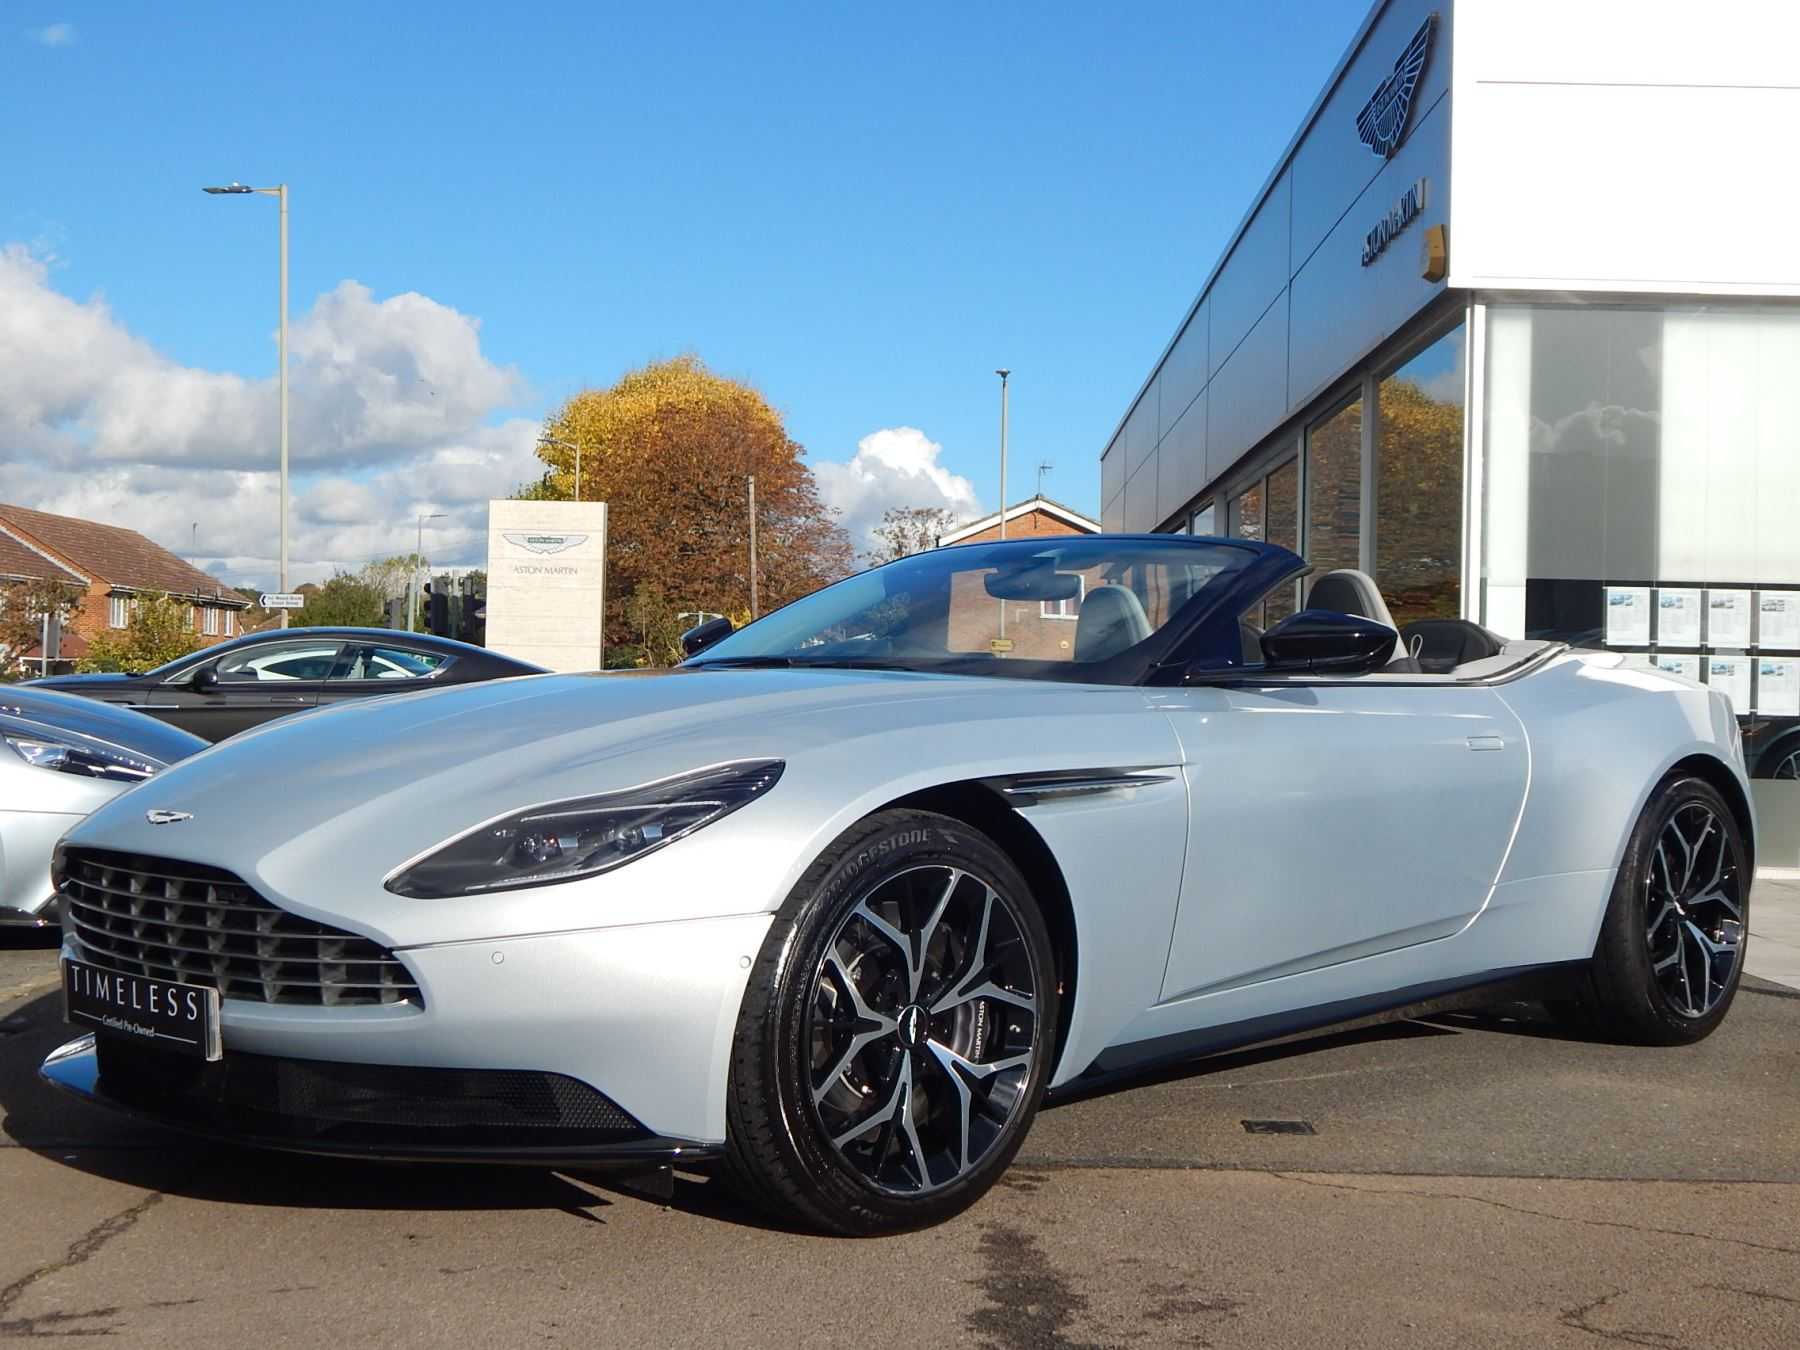 Aston Martin DB11 Volante 4.0 V8 Twin Turbo image 3